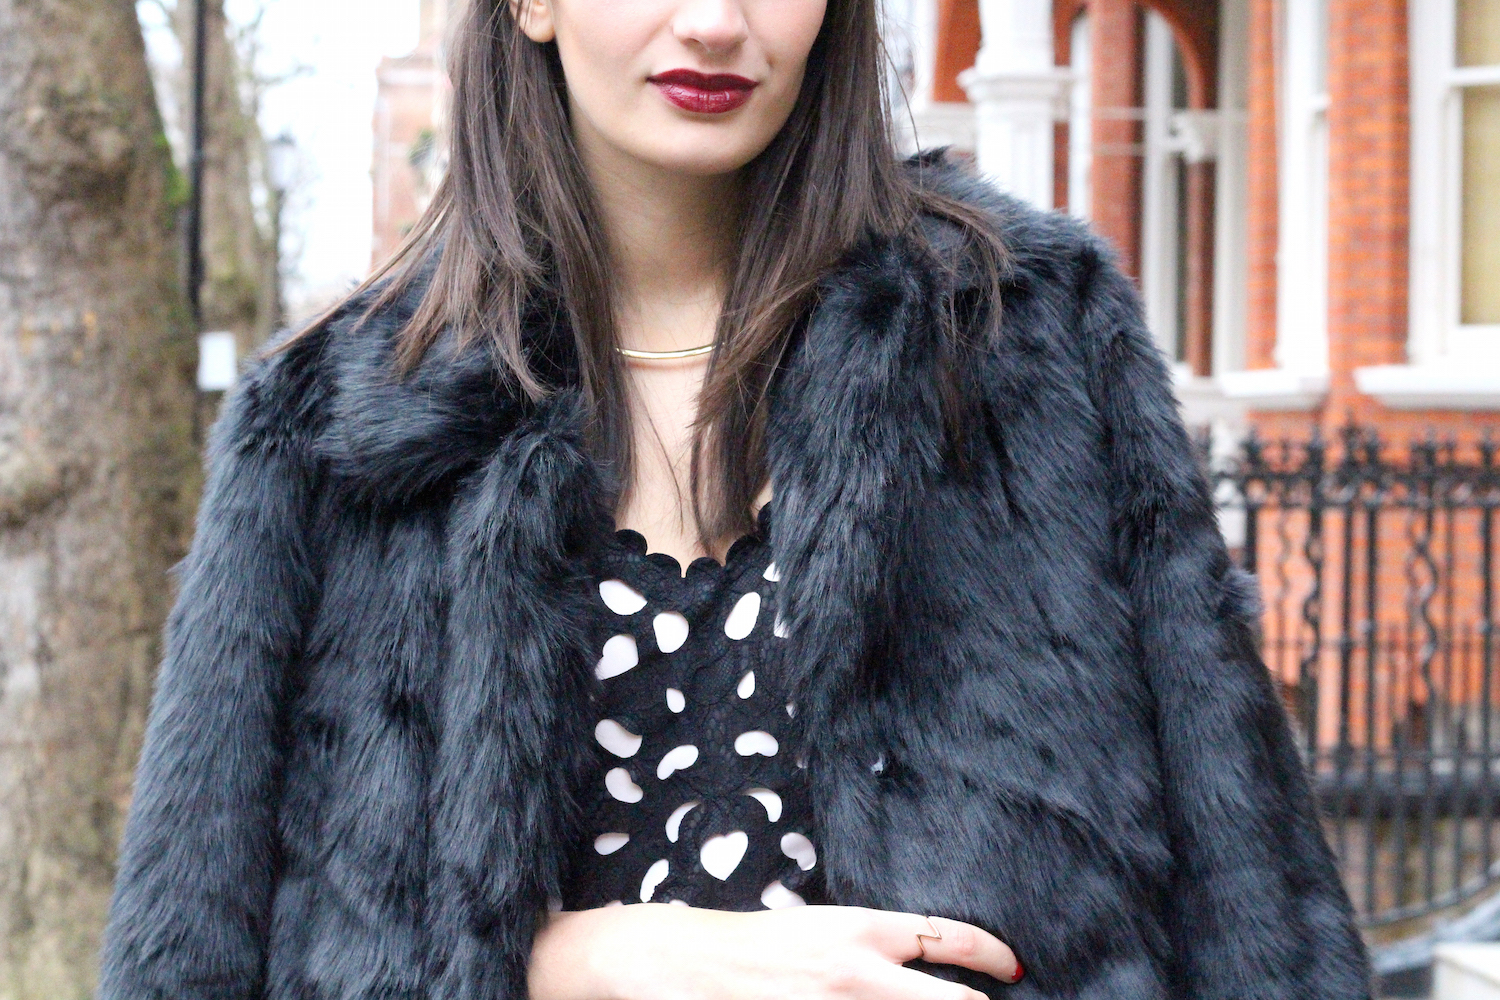 peexo wearing faux fur coat